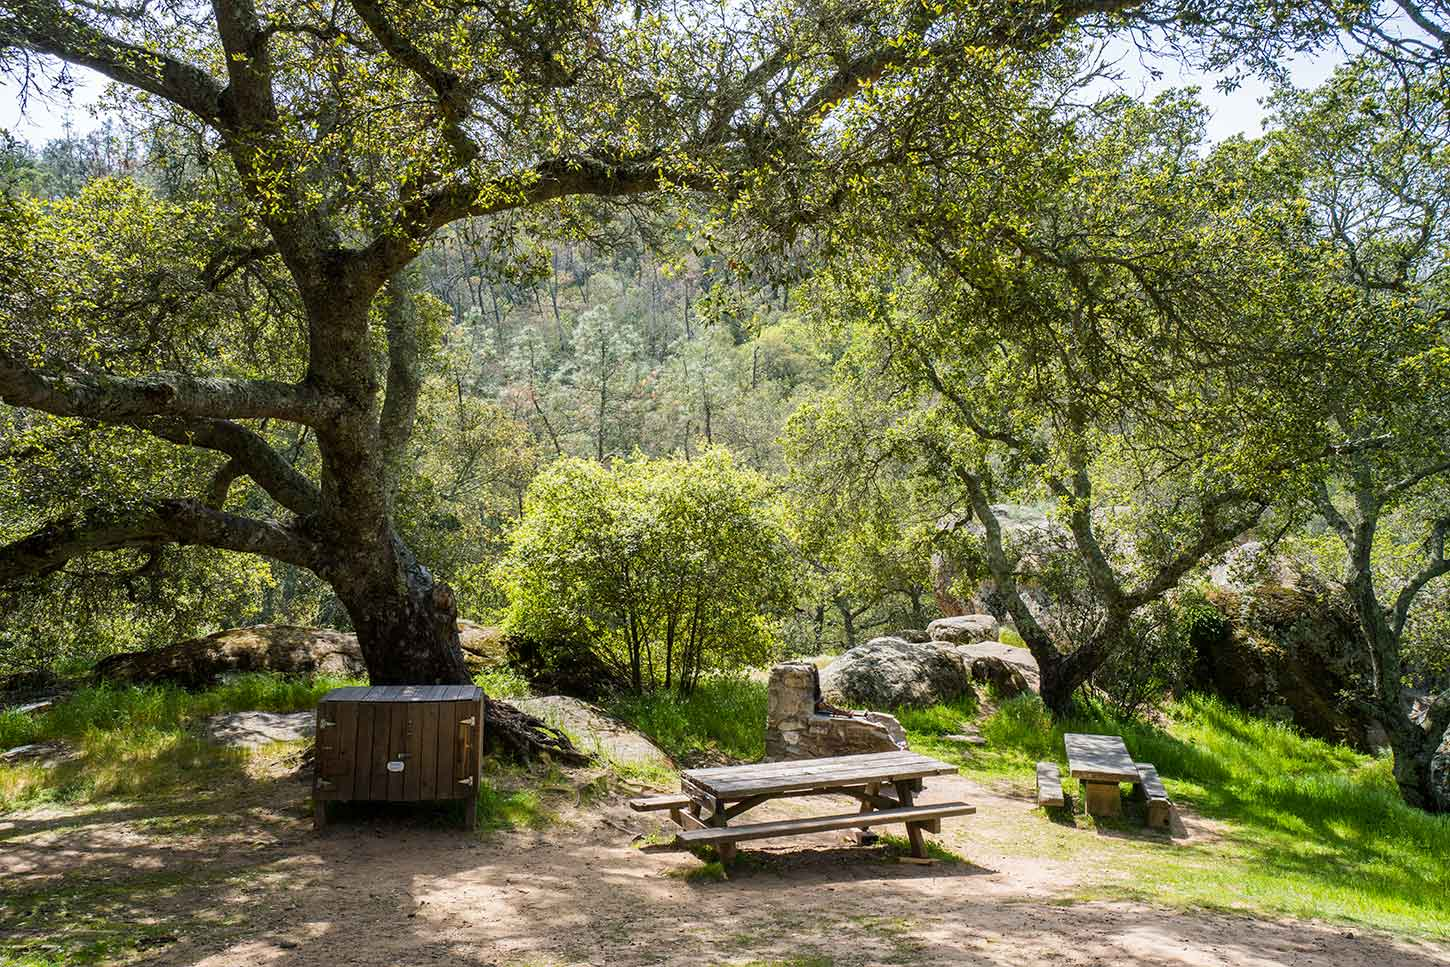 Last summer, we found ourselves grounded — and staying close to home — instead of jetting off on vacations. Live Oak Campground